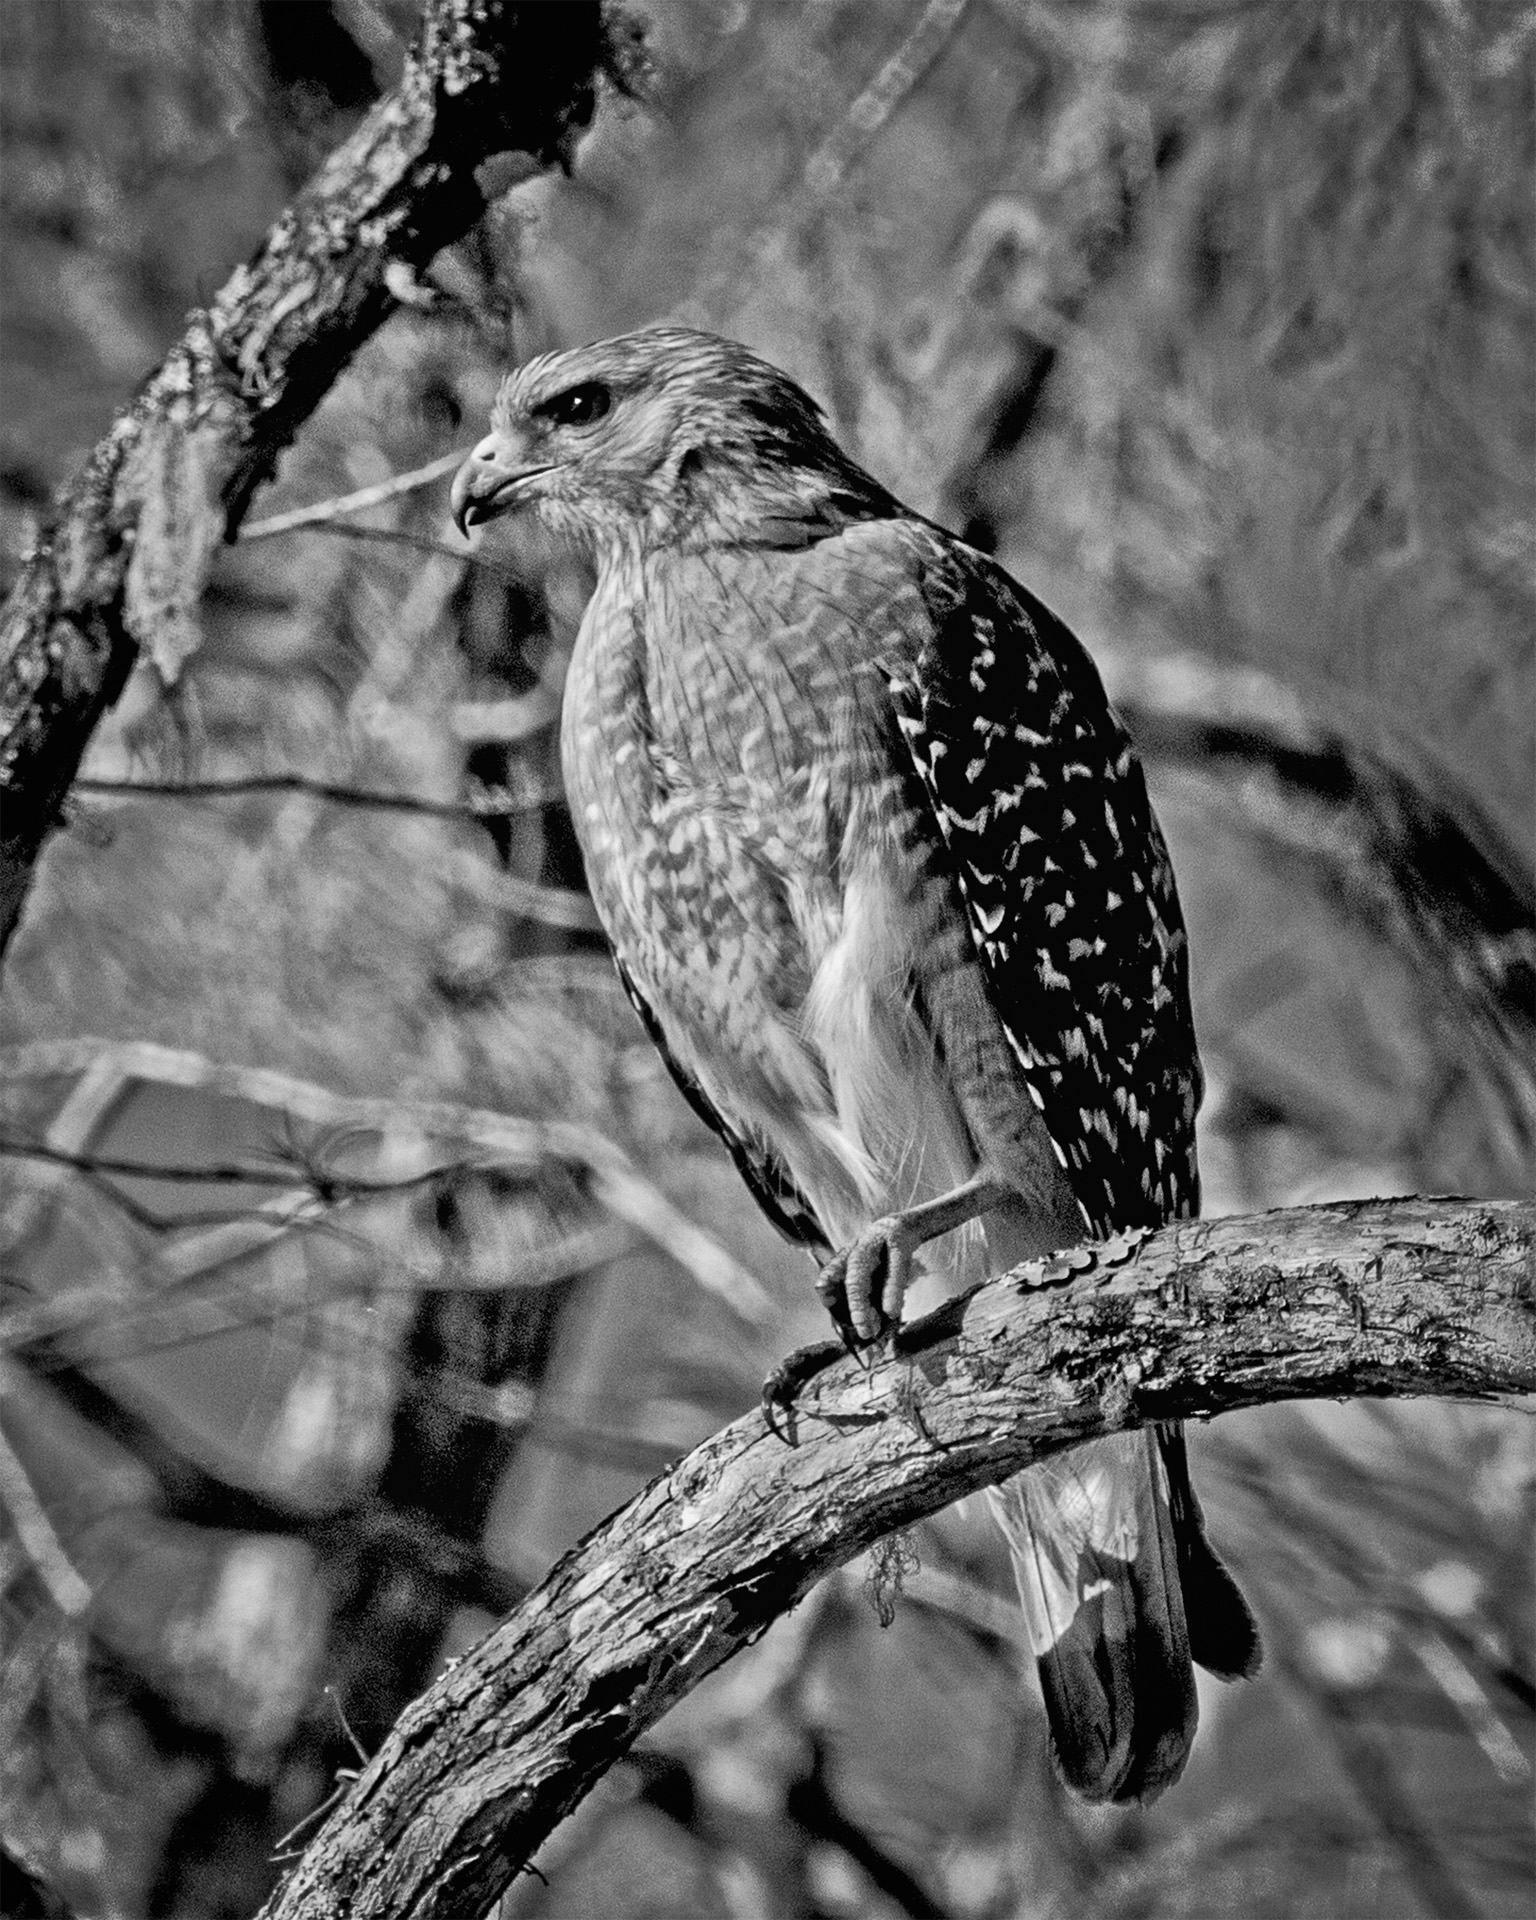 Red shouldered Hawk - Monochrome Print (Open) - Name Withheld Per Request